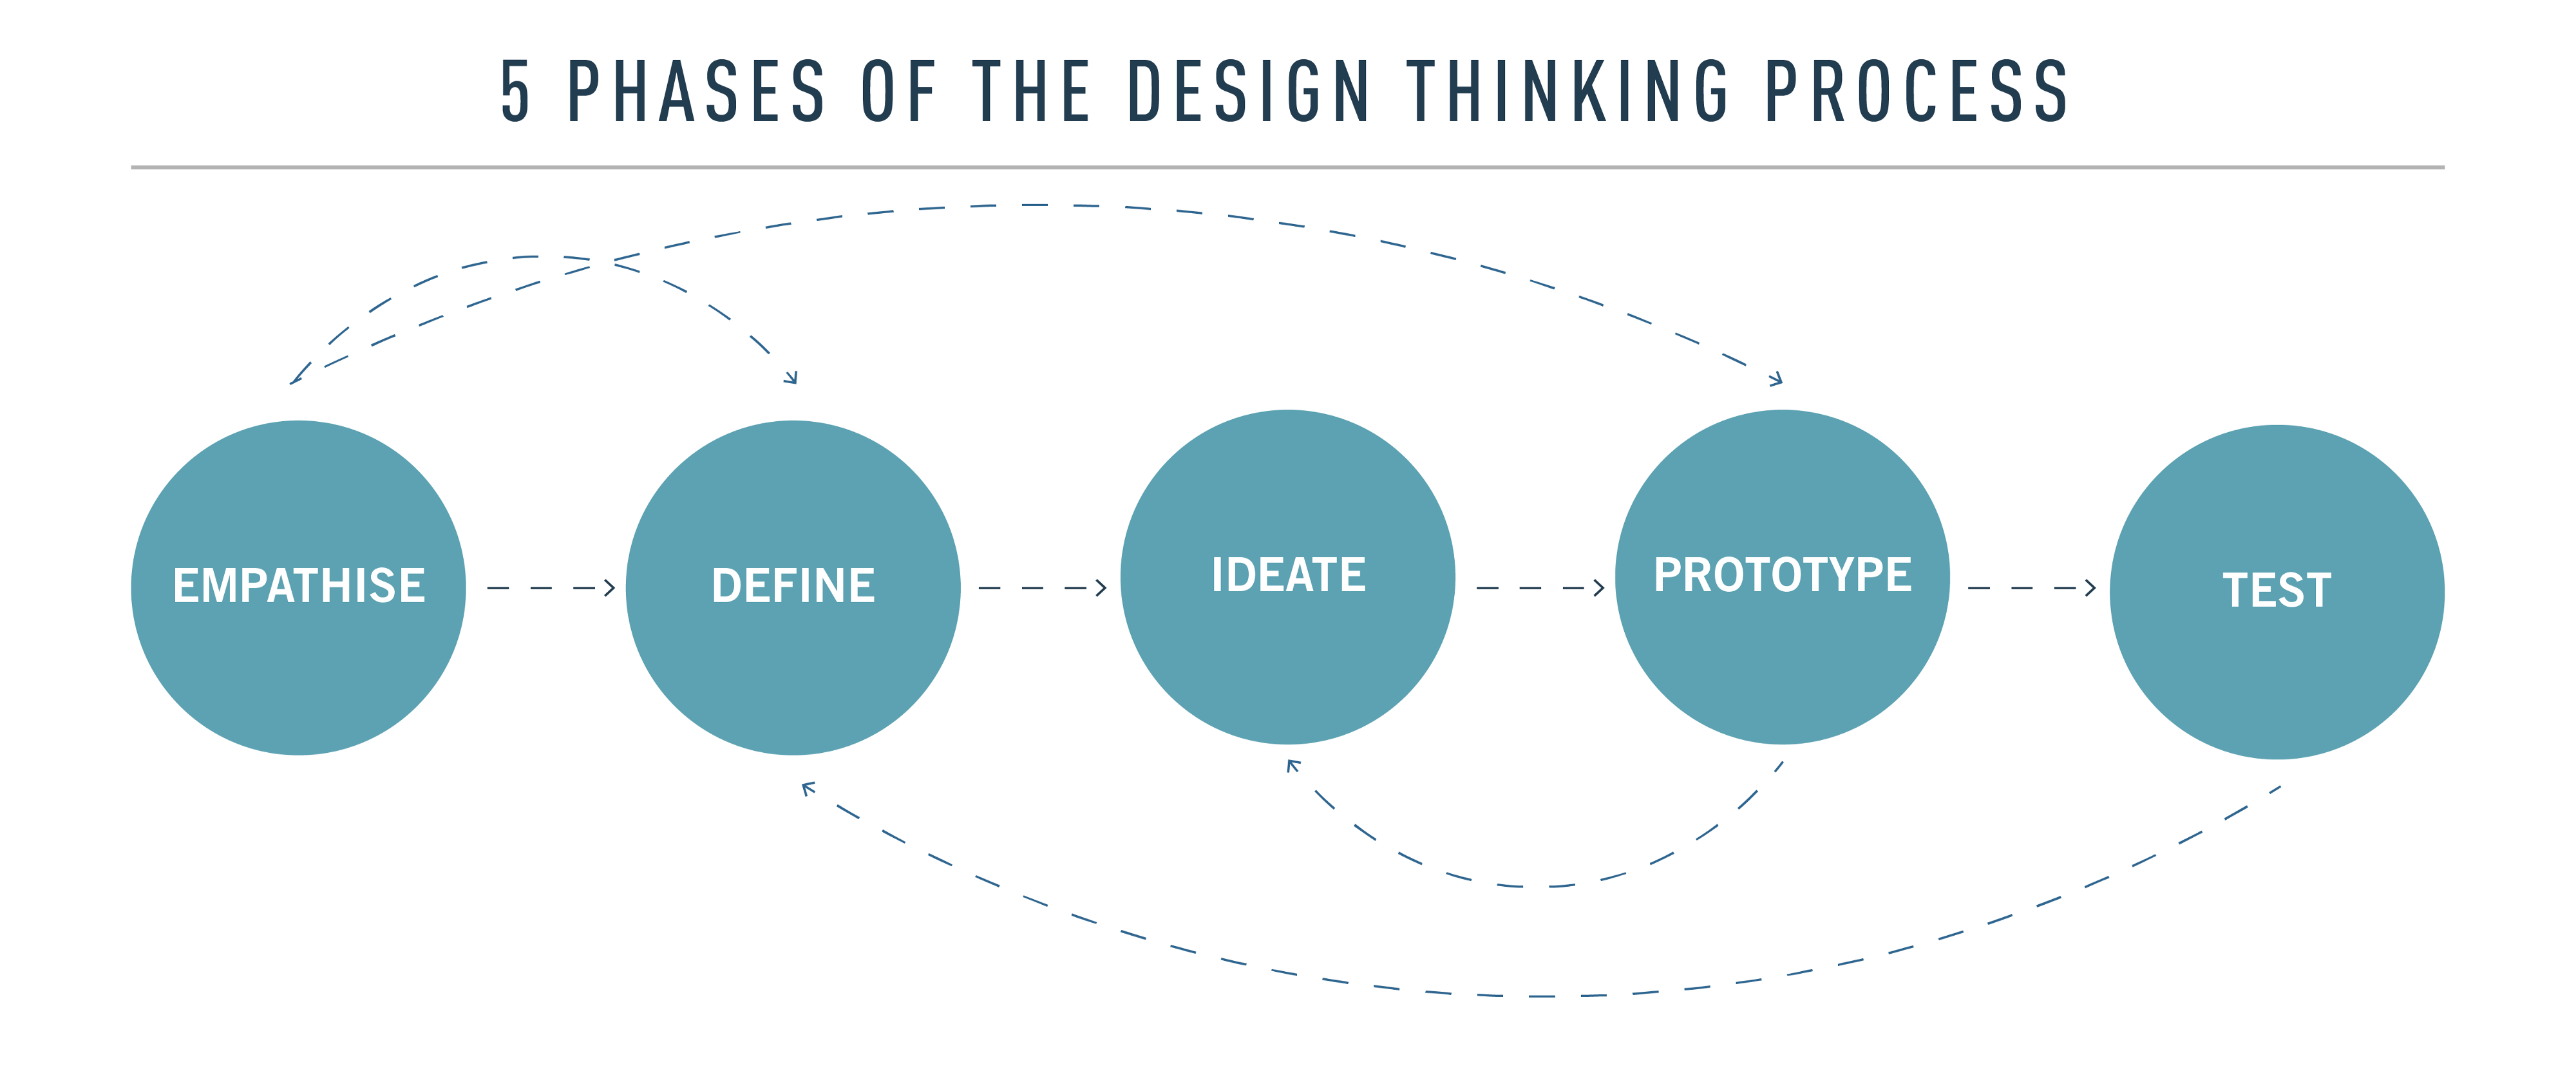 The Lotus Blossom method: ideation on steroids | by Phil Delalande | UX  Collective